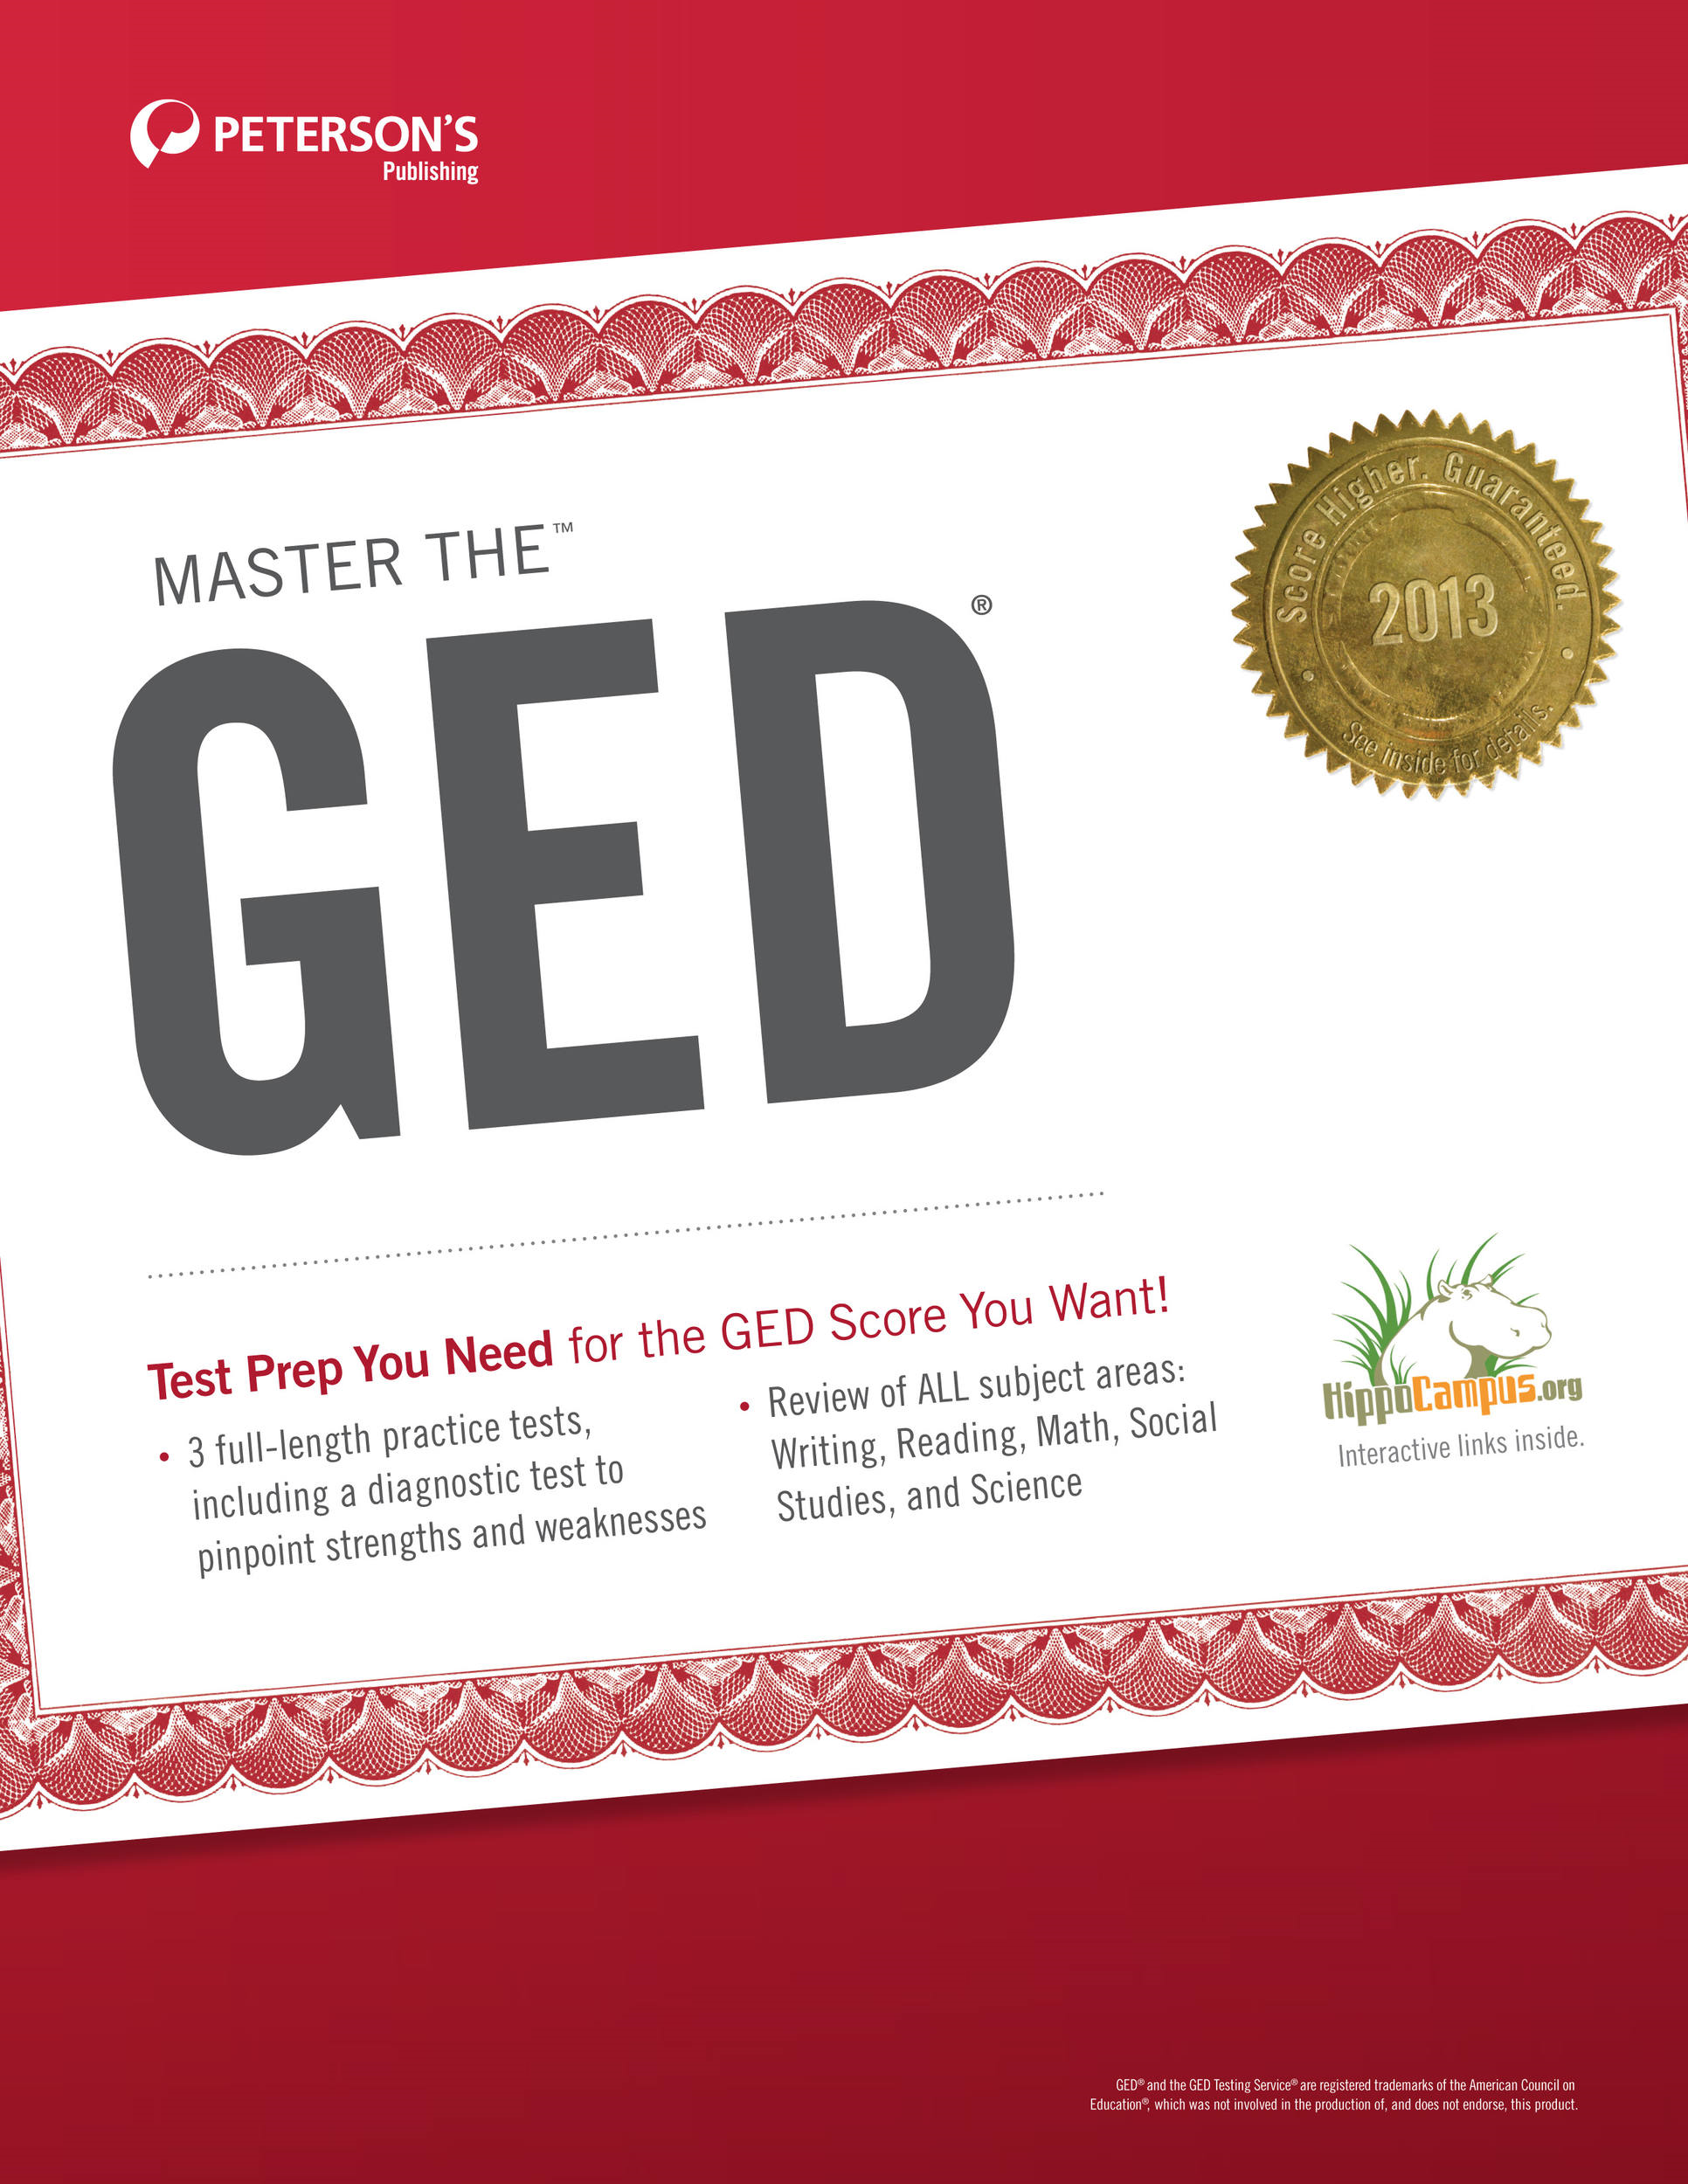 Master the GED: Determining Strengths and Weaknesses By: Peterson's